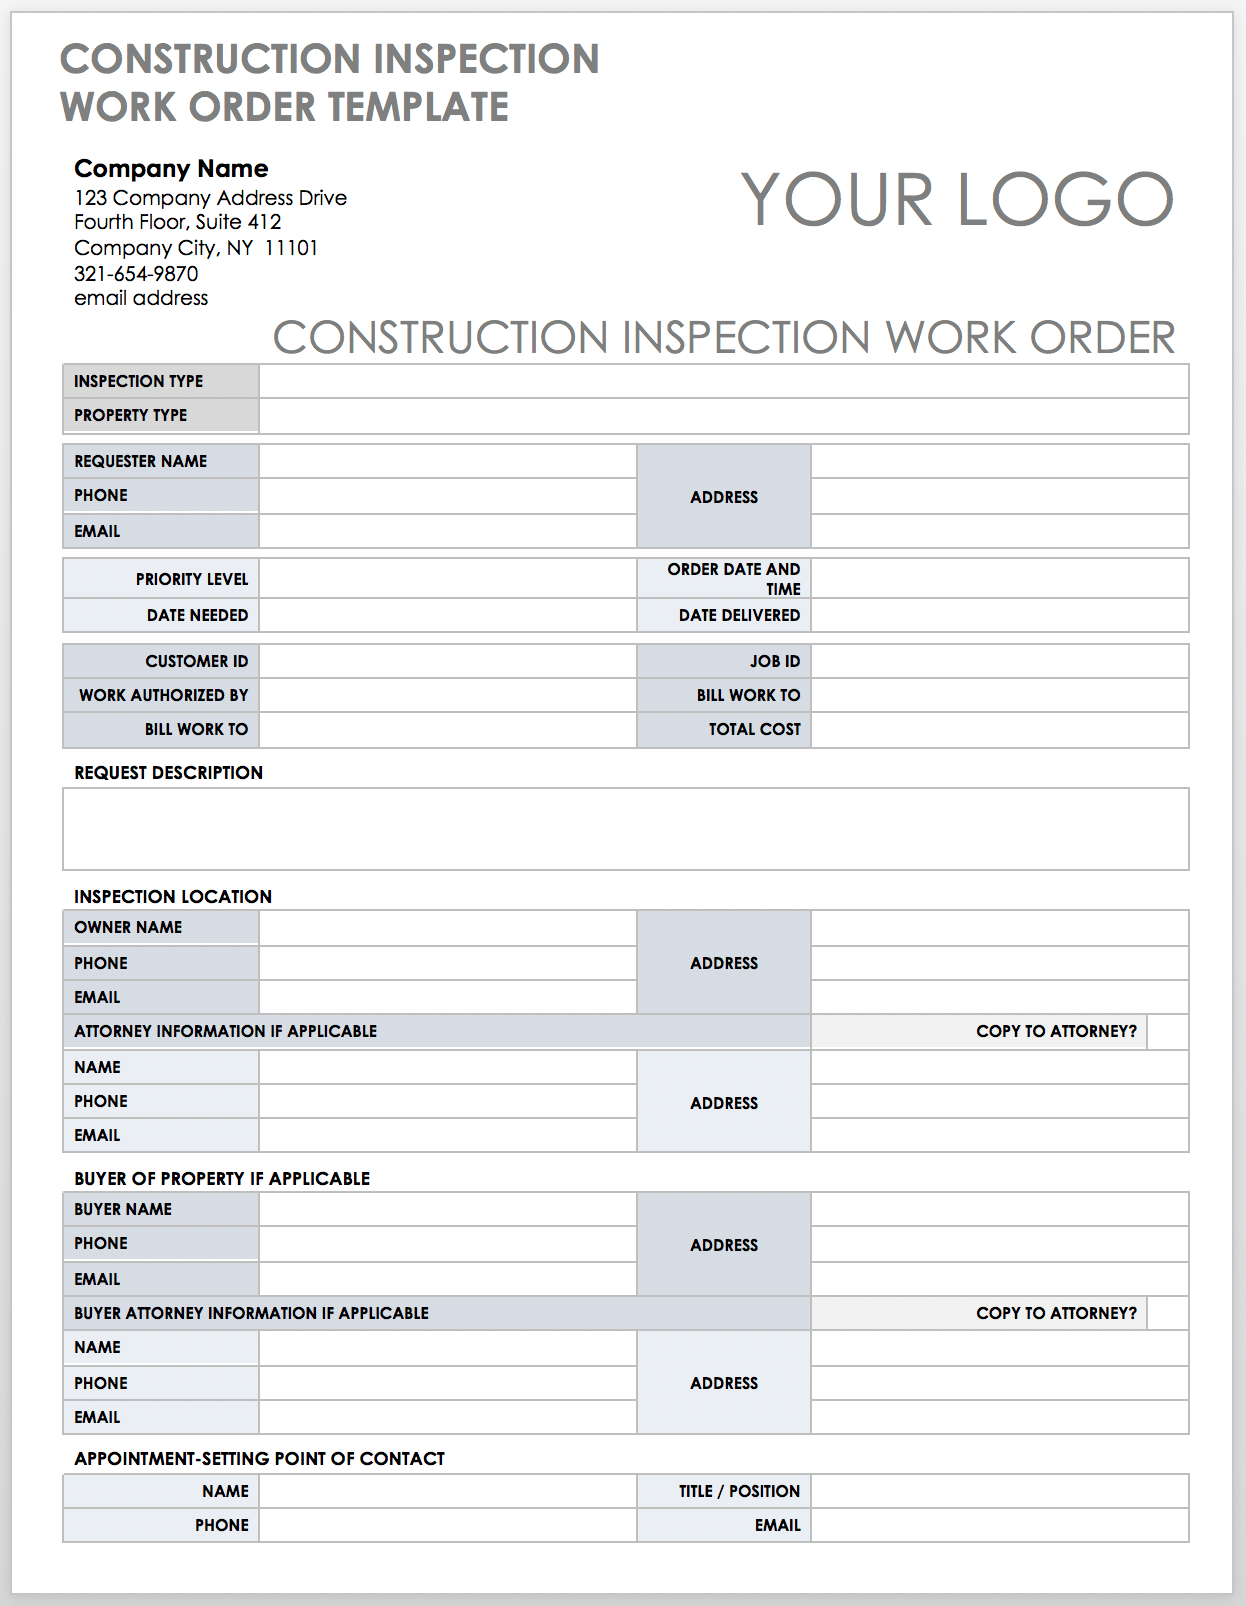 Free Construction Work Order Templates & Forms   Smartsheet